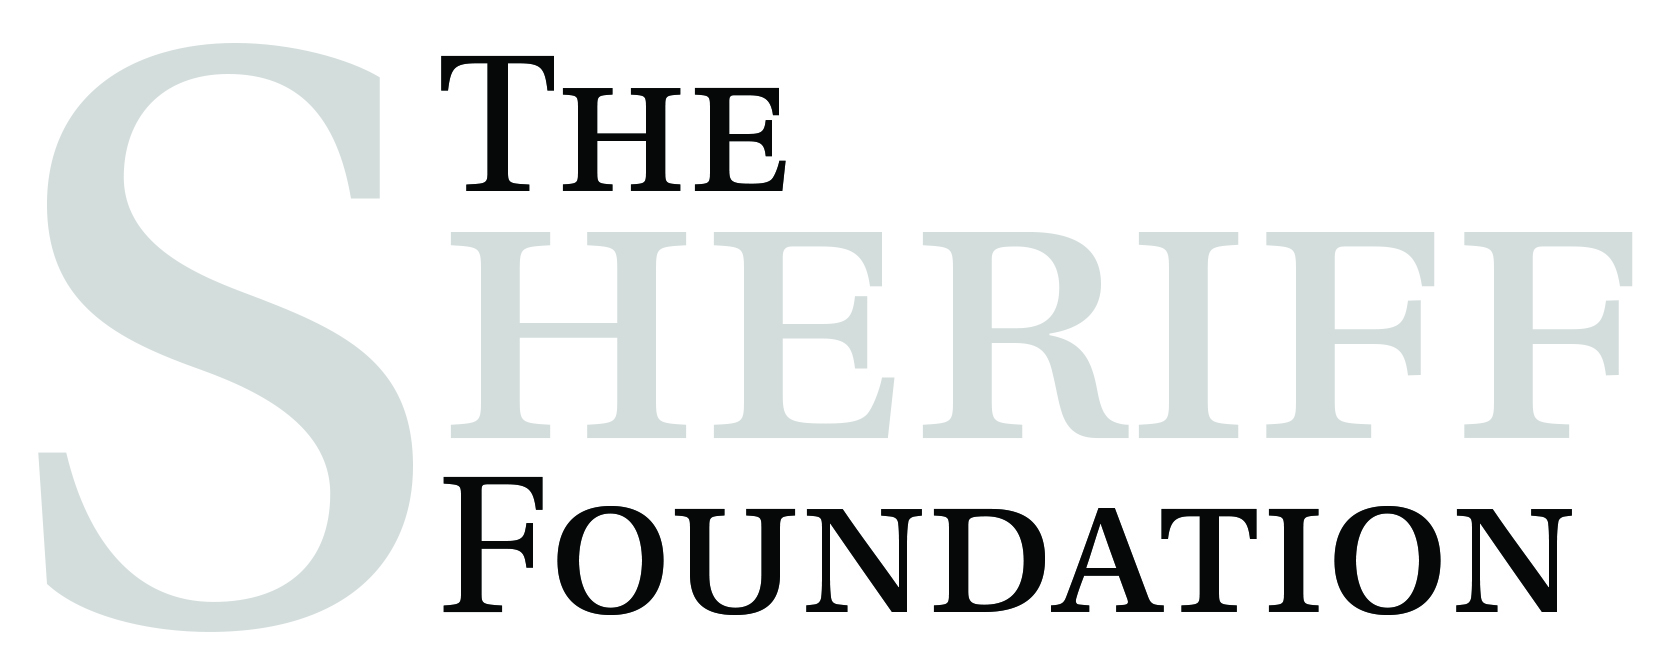 Sheriff Foundation Logo